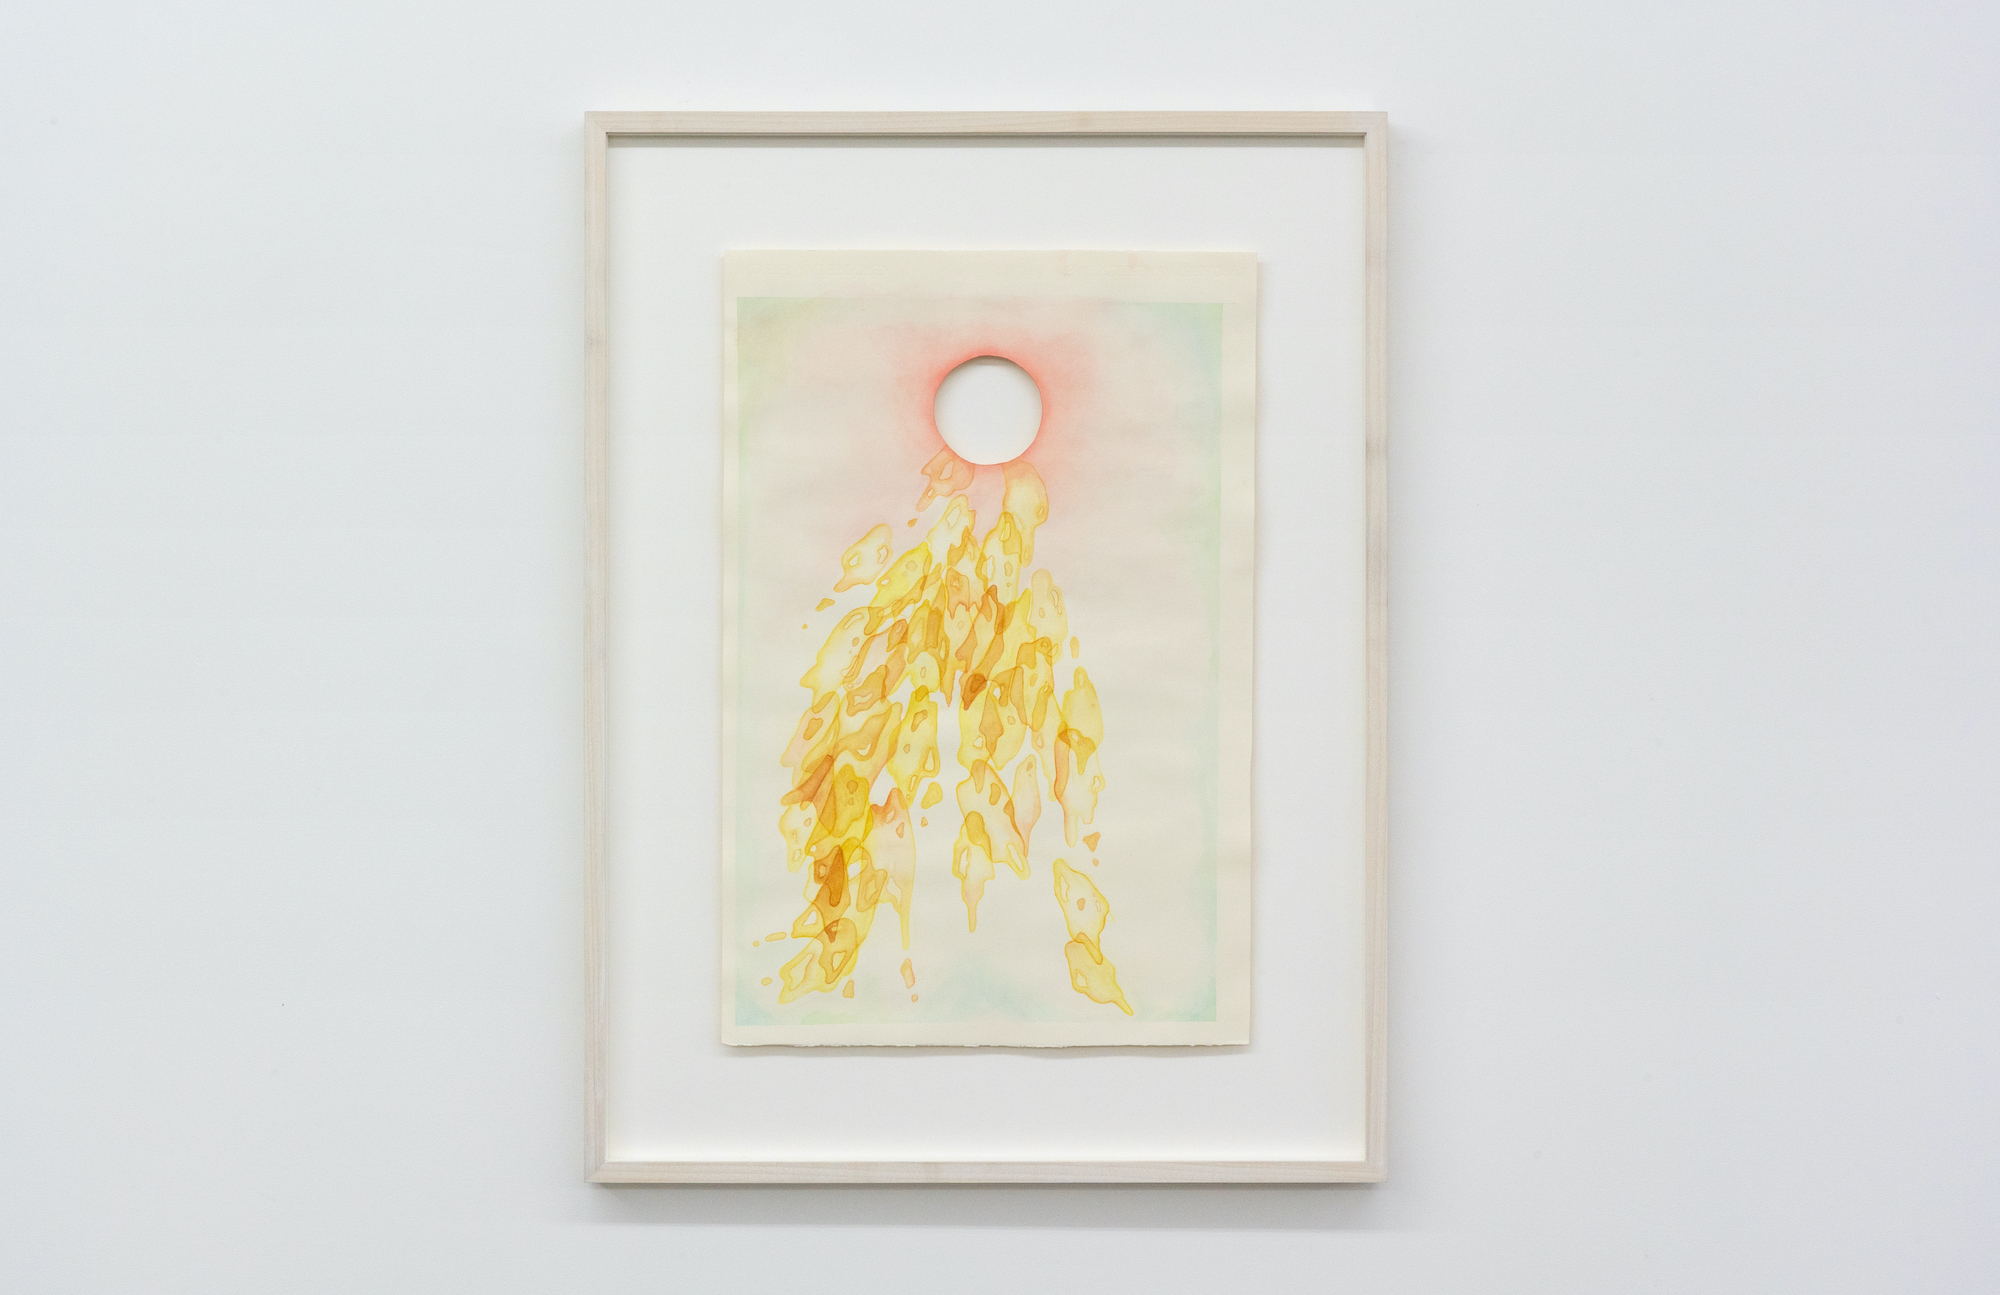 Tai Shani, Cum Stains Ascending to the Event Horizon, 2020, courtesy of the artist and PUBLIC Gallery